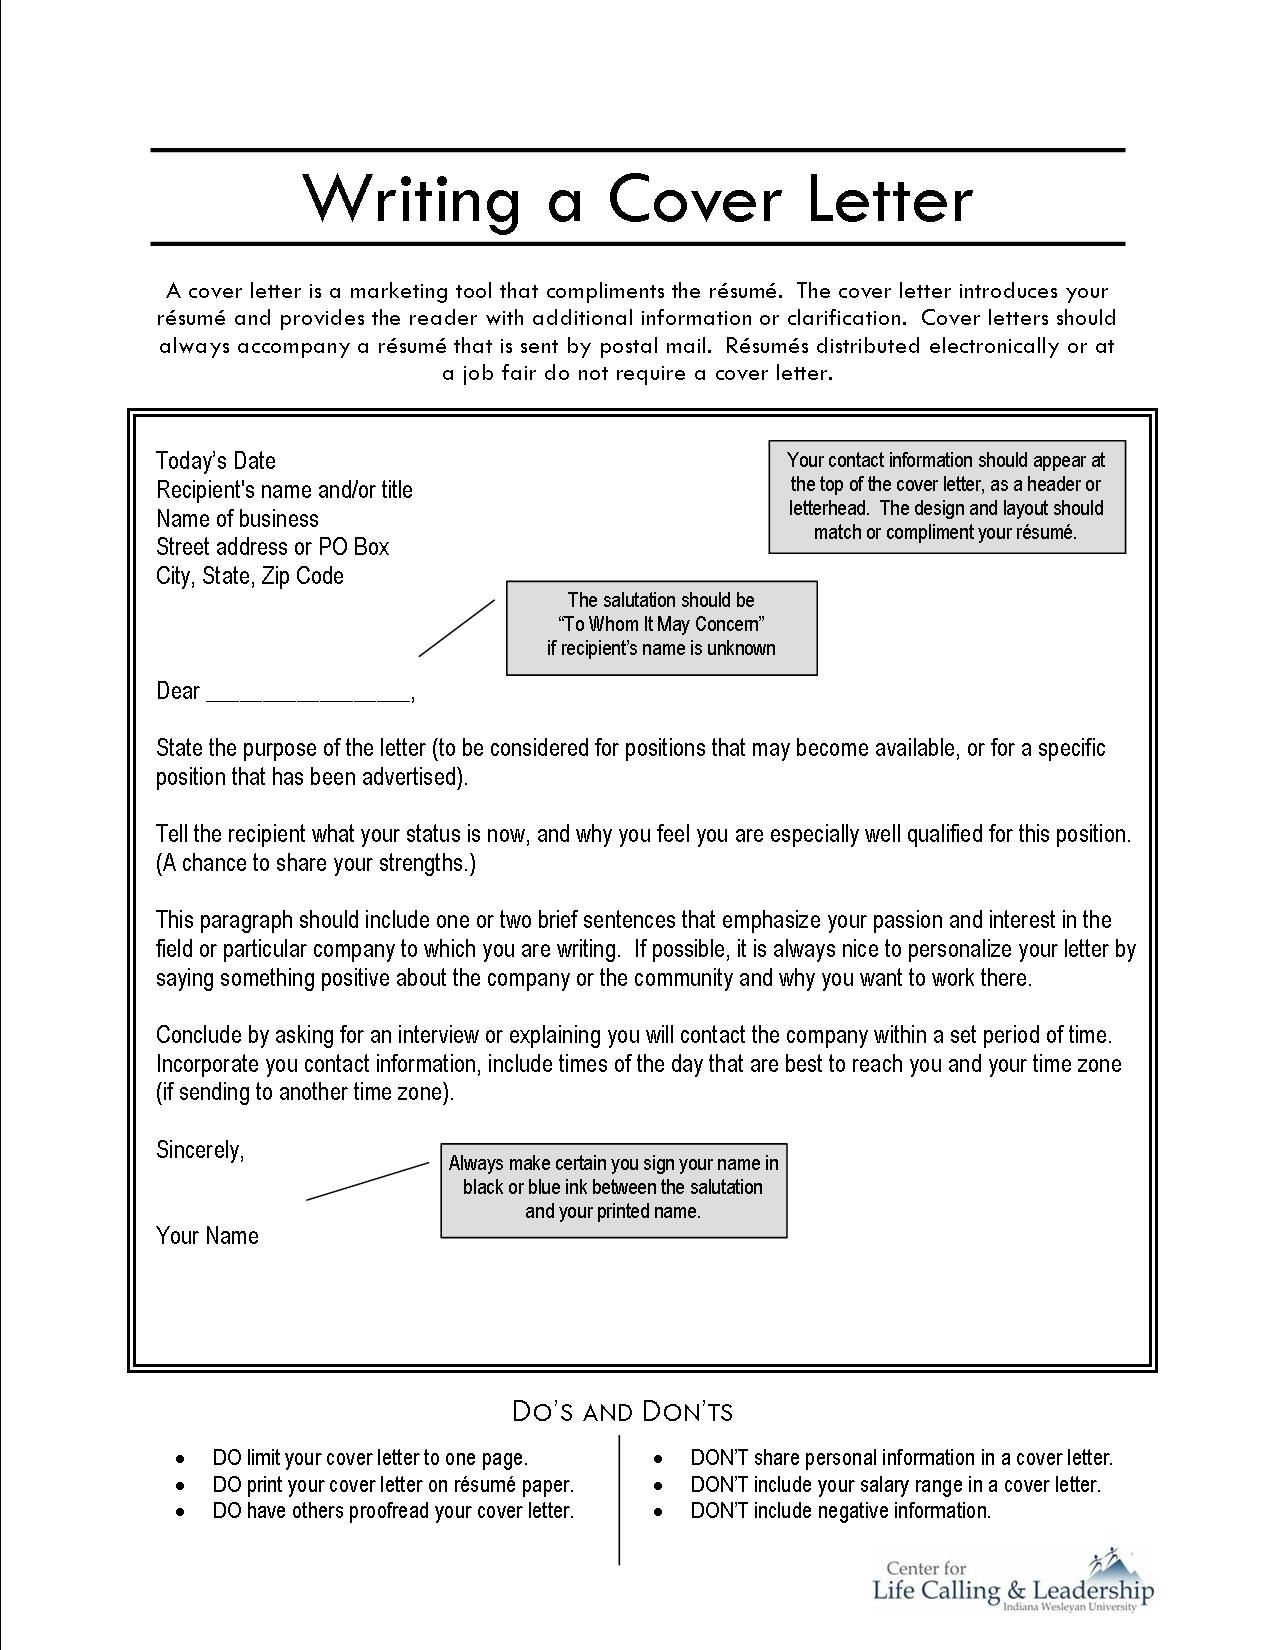 Awesome How Start Cover Letter For Resume Jianbochen Rfi Sample With How To Do A Cover Resume